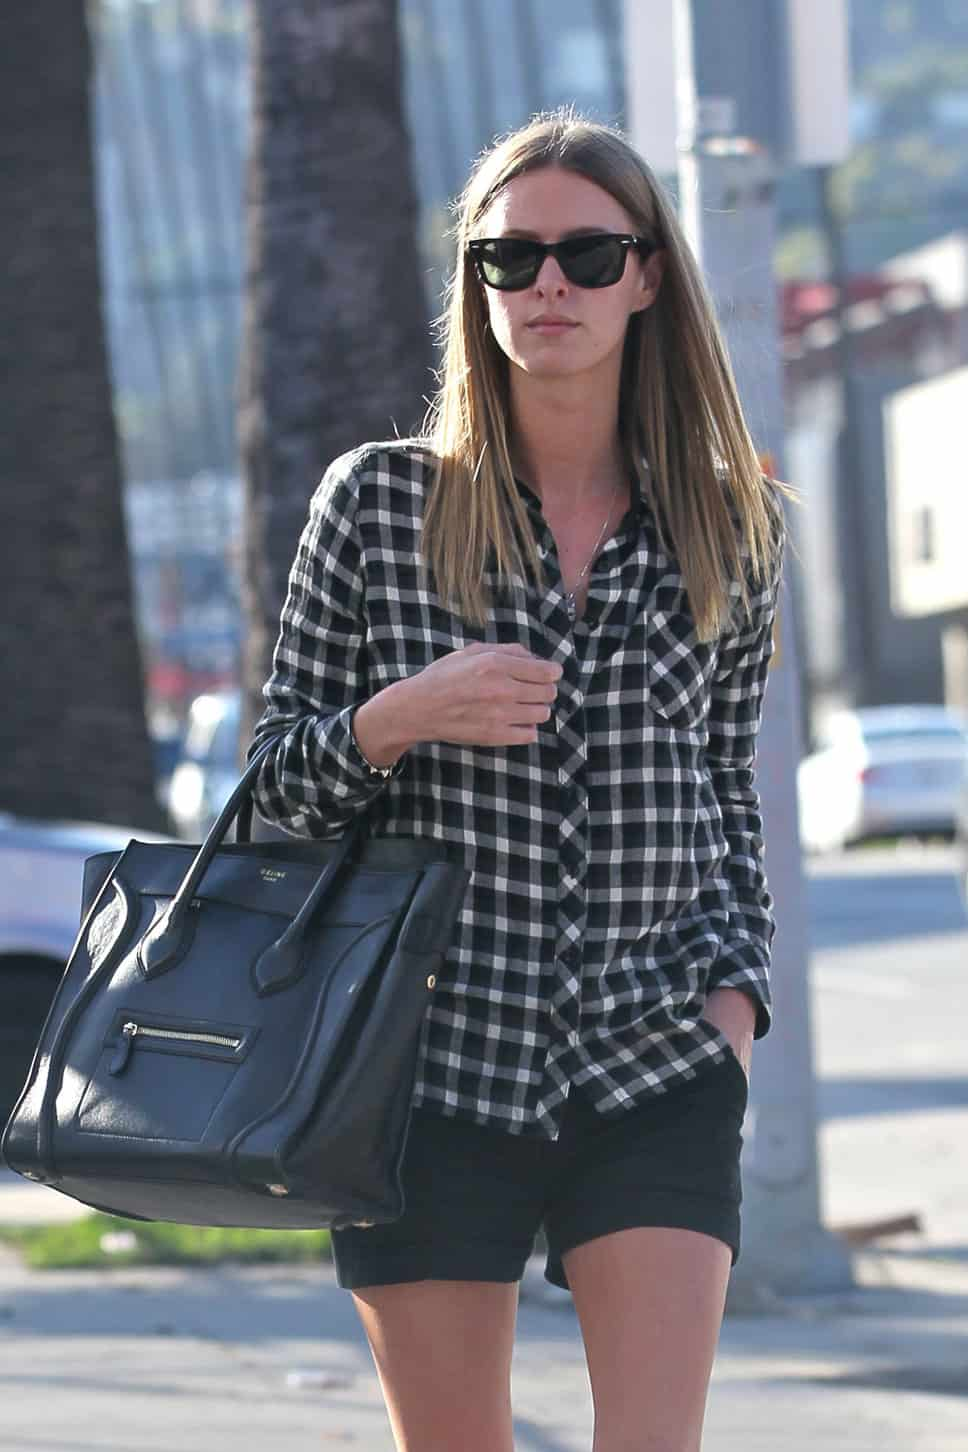 nicky_hilton_checered-shirt